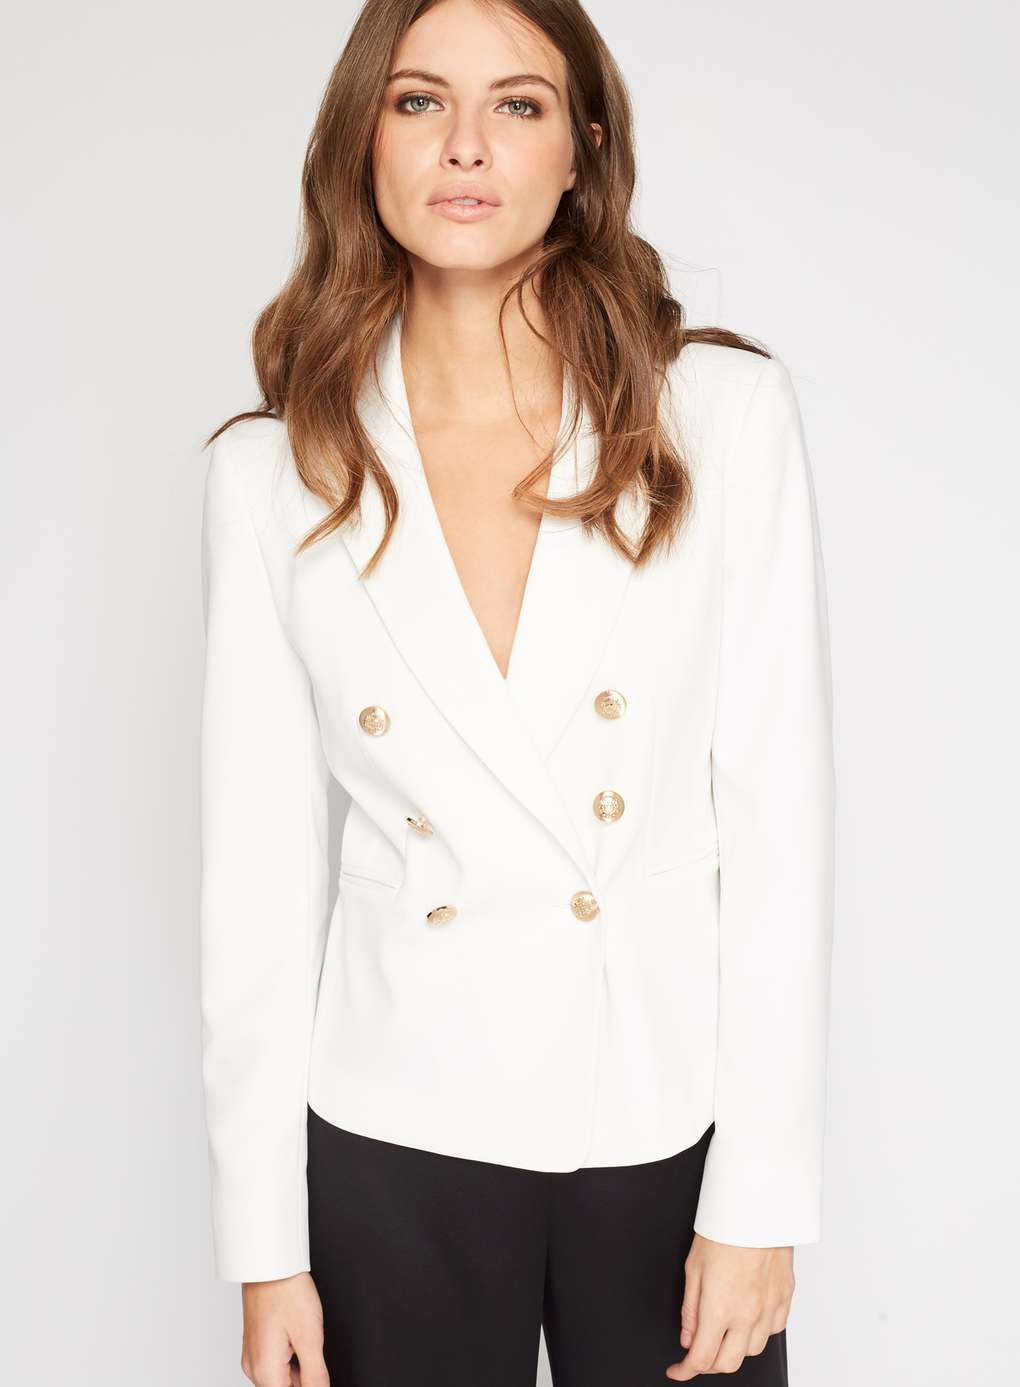 Every fashion darling needs a beautiful blazer that's elegant enough to impress and comfortable enough to dress down. This military-inspired number fits the bill, and it's sure to give you endless wear through every season! The golden buttons give this blazer that extra bit of oomph, making it a chic option for any time of the year.